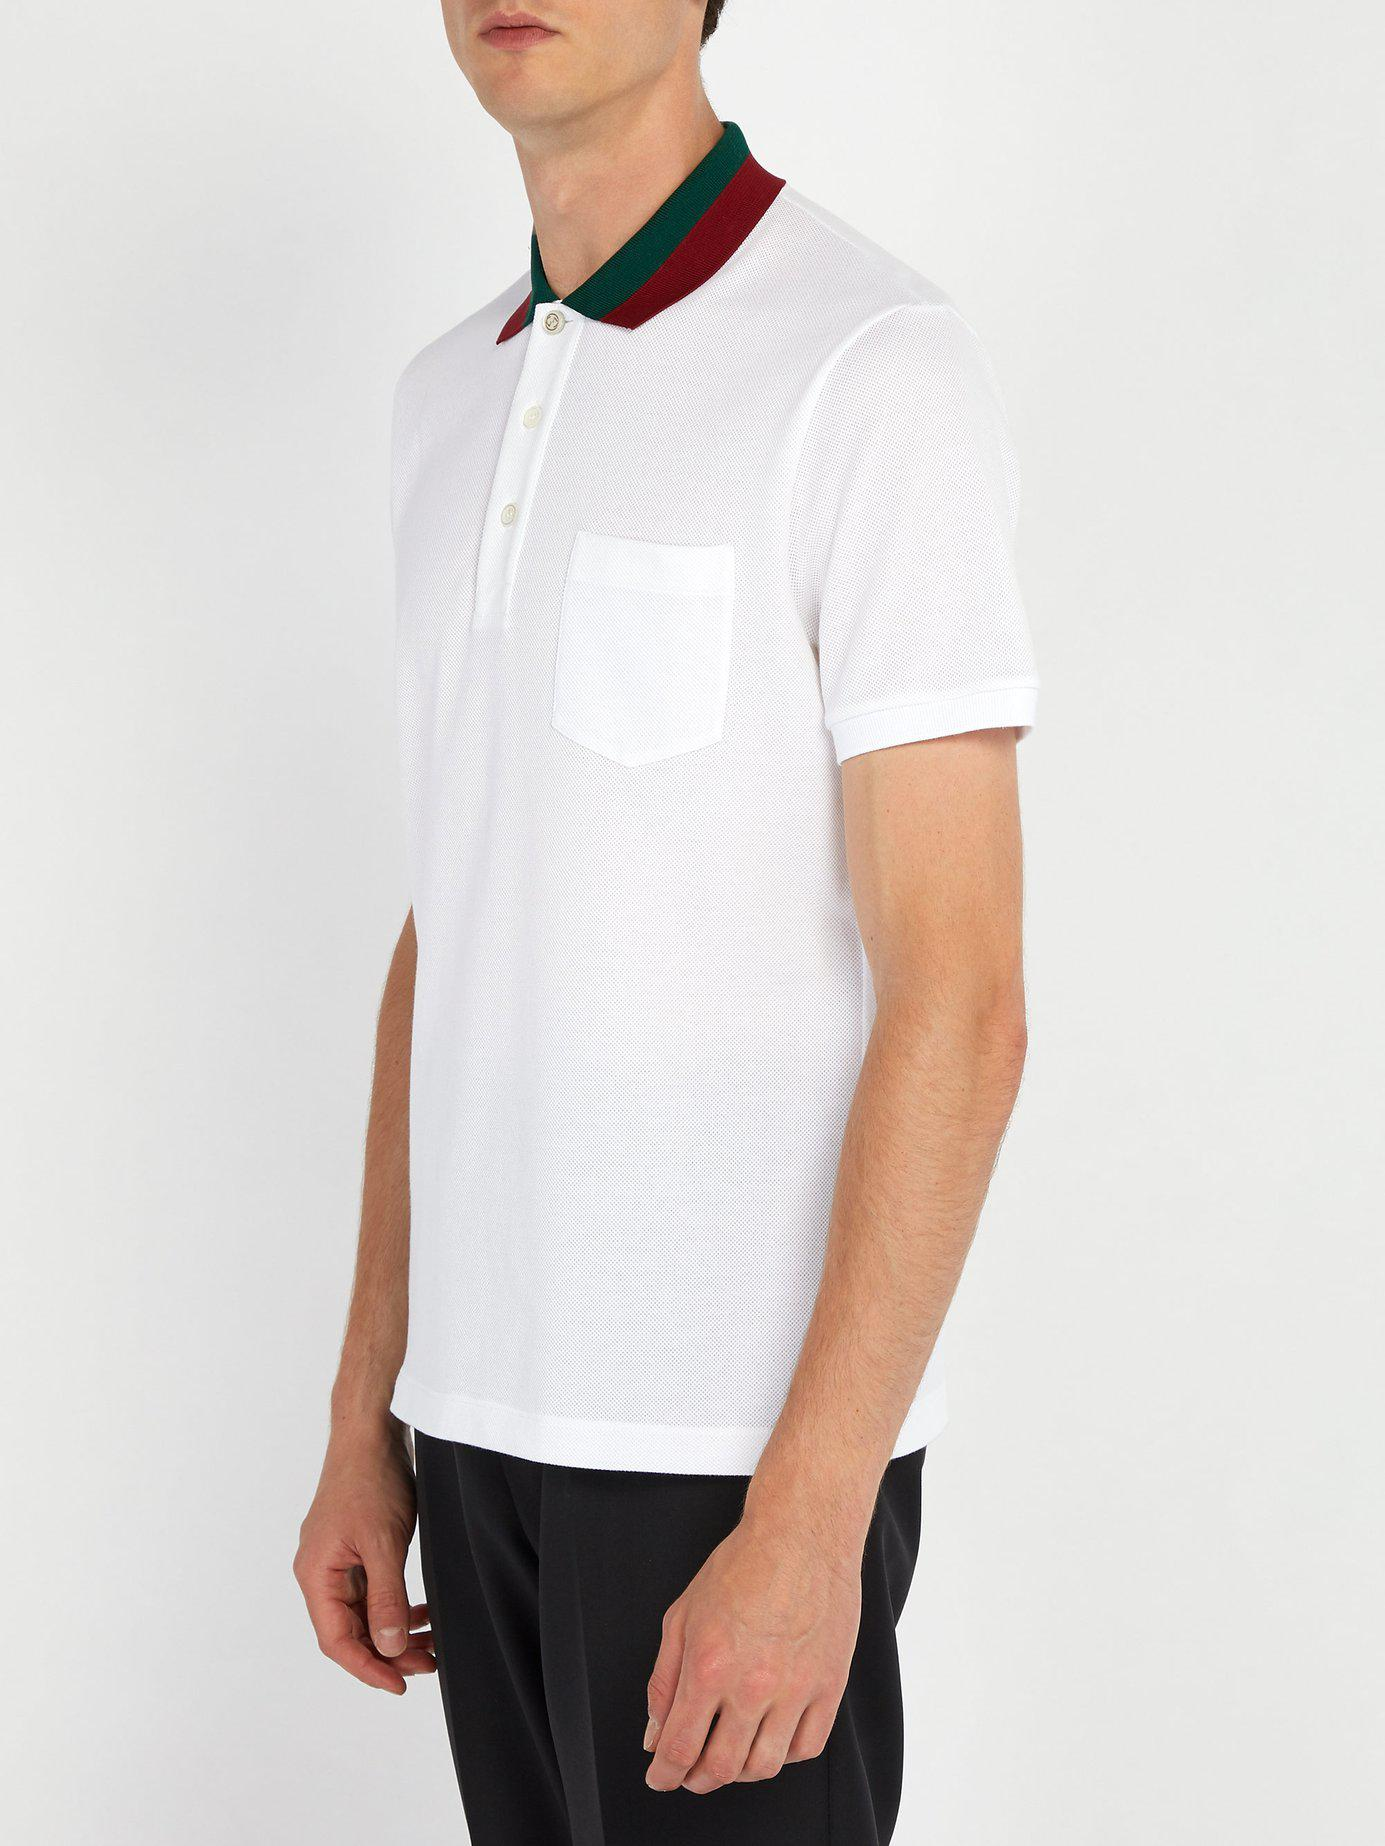 fe7954c15f48 Gucci Web Stripe Trimmed Cotton Piqué Polo Shirt in White for Men - Lyst